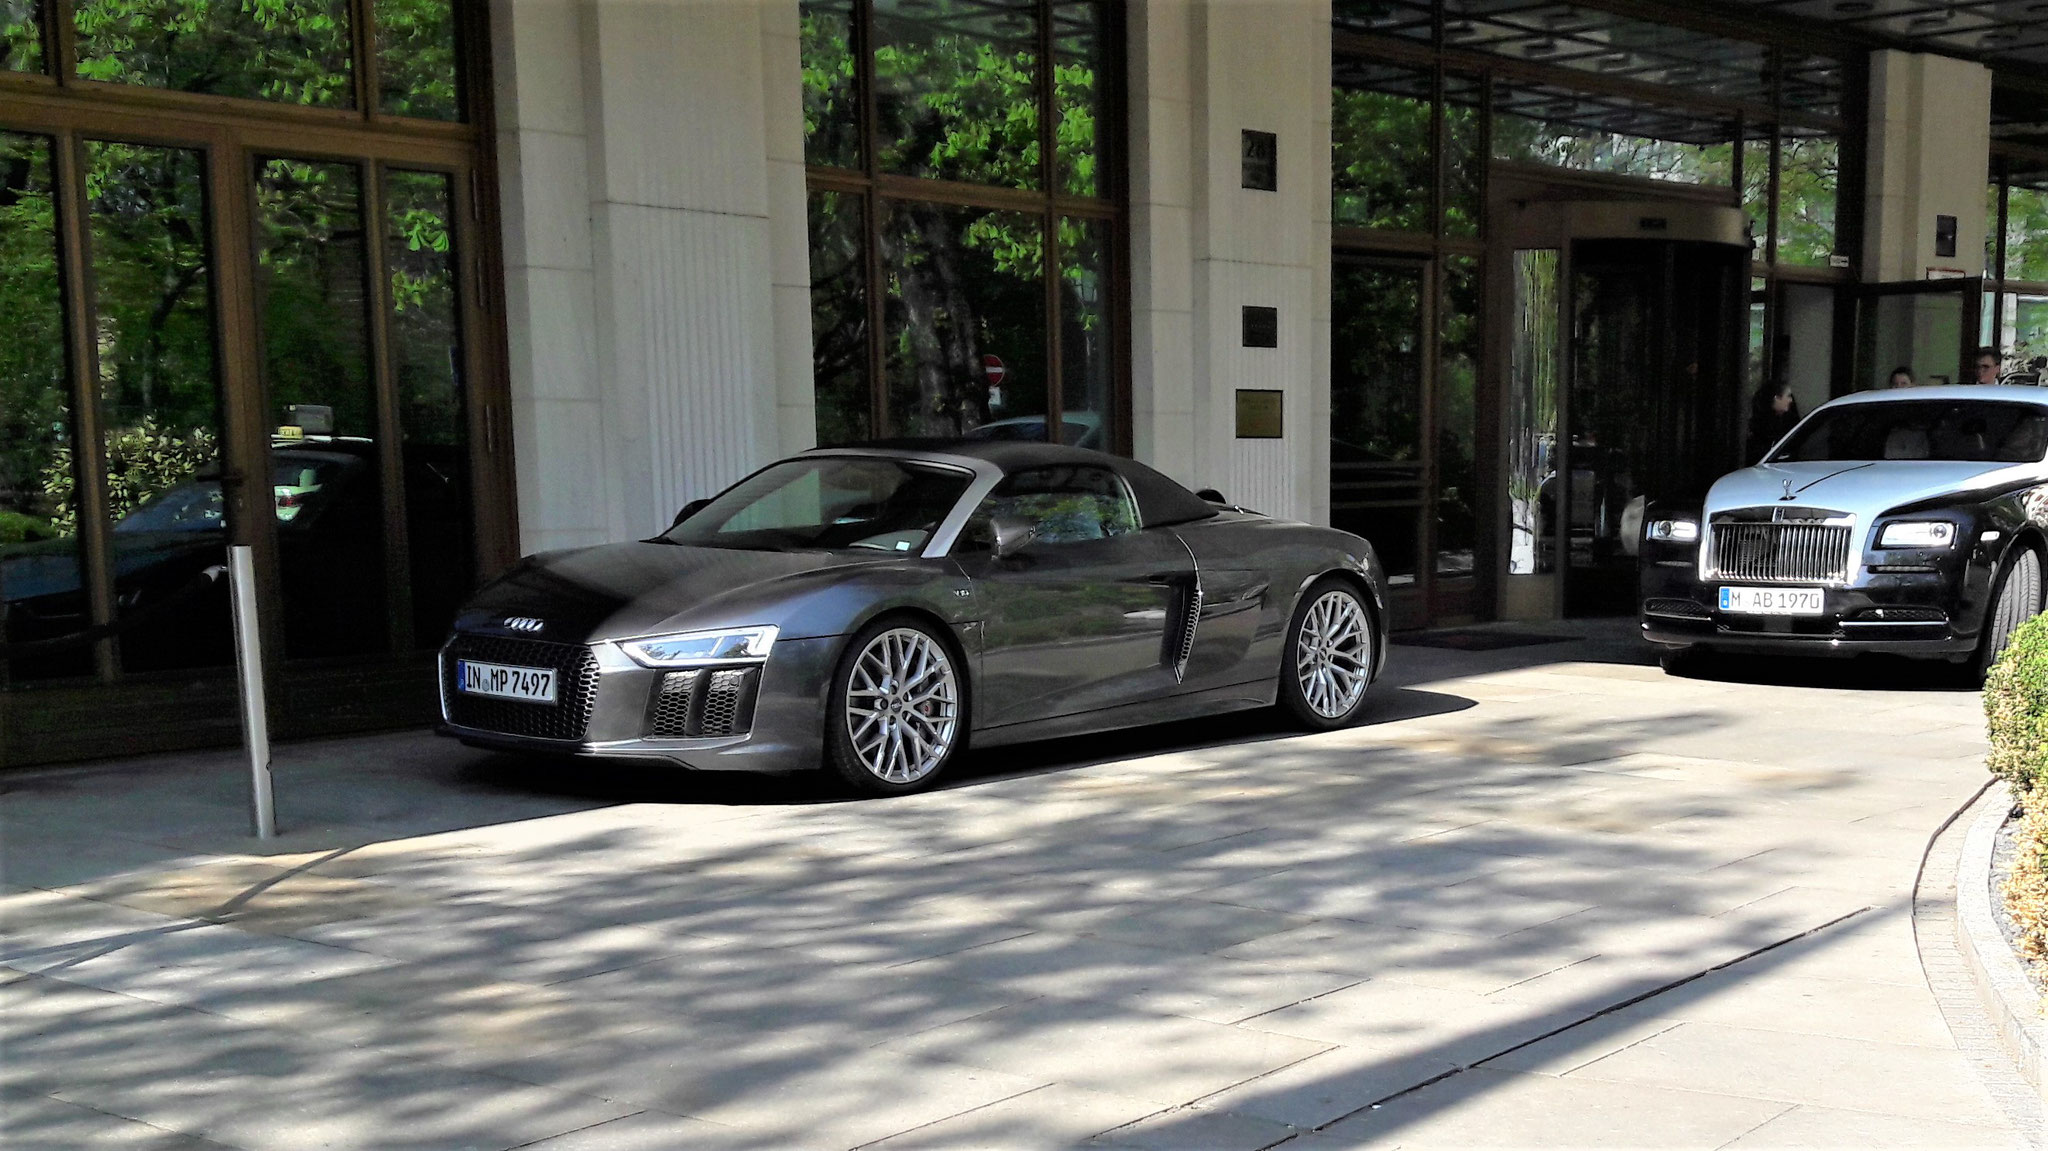 Audi R8 V10 Spyder - IN-MP-7497